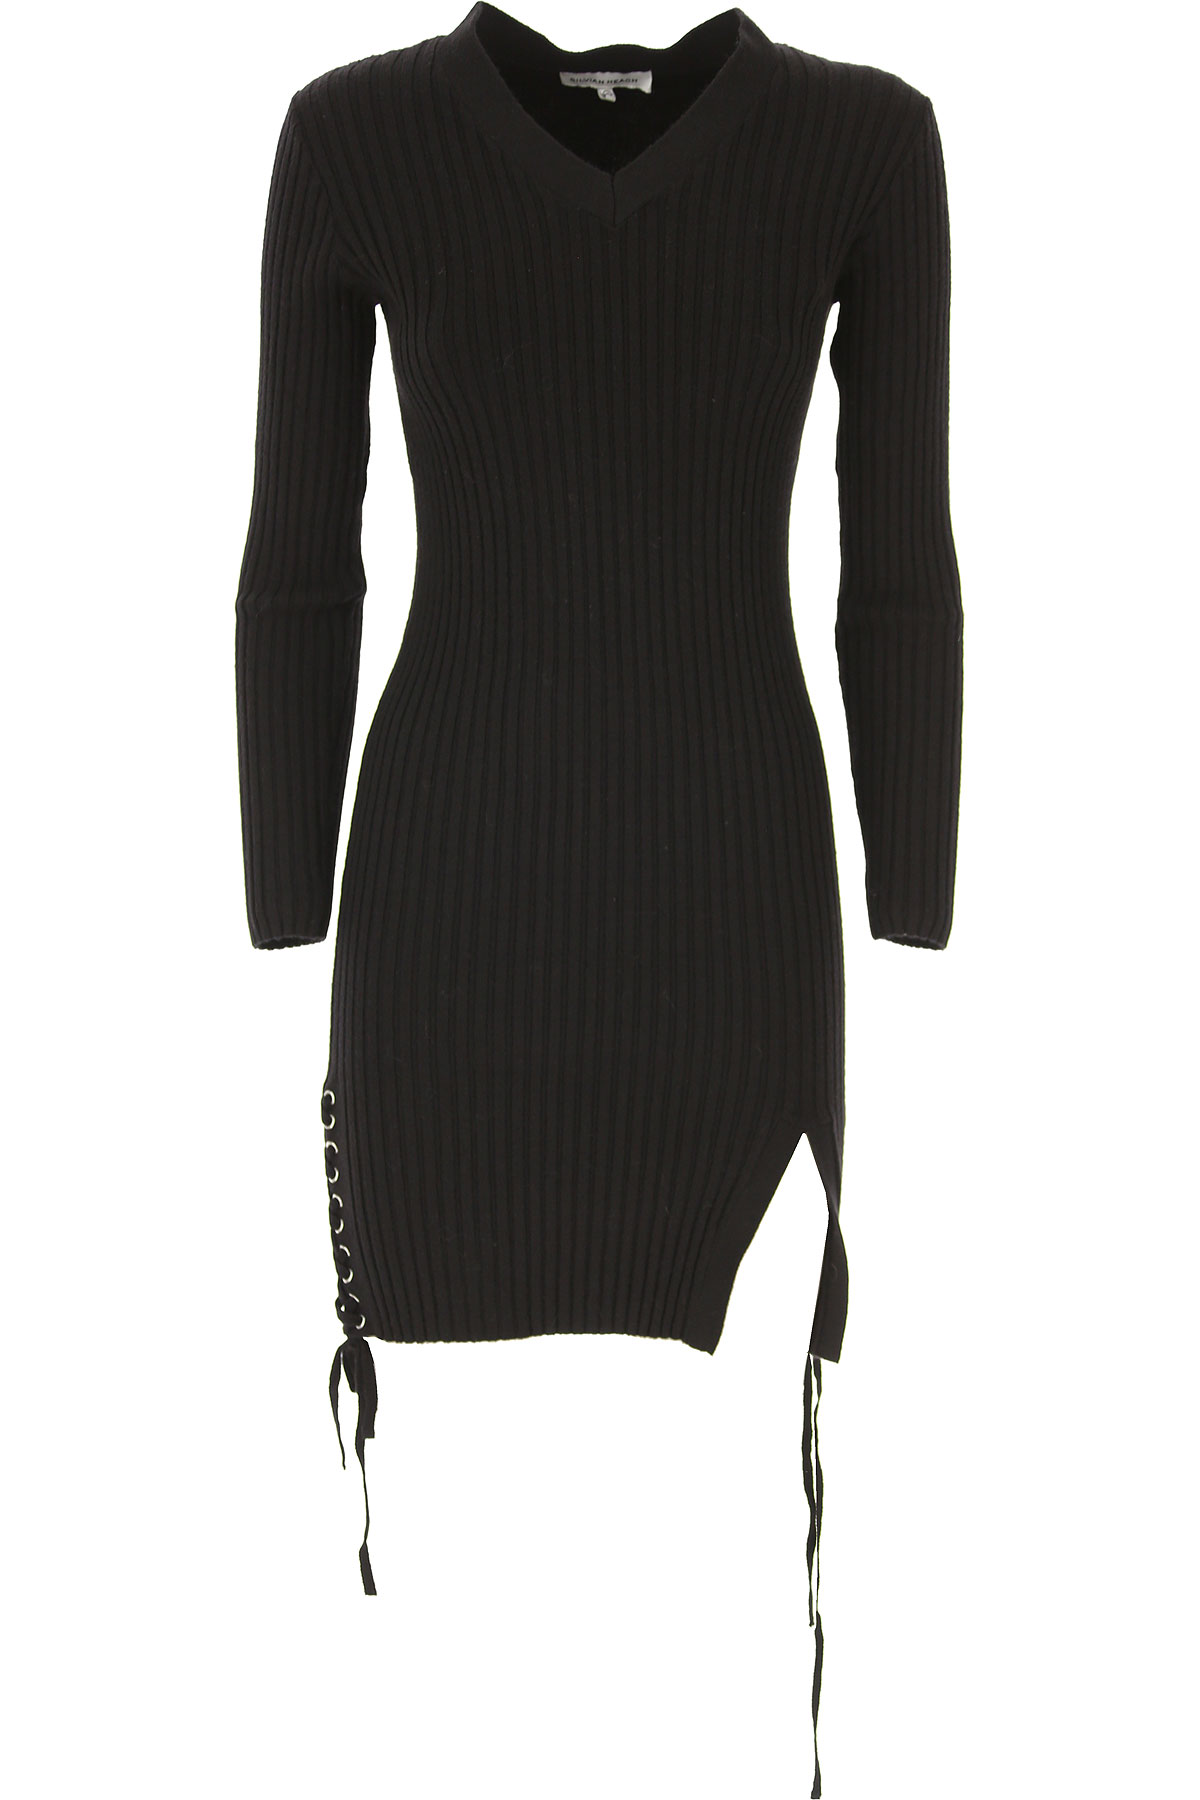 Image of Silvian Heach Dress for Women, Evening Cocktail Party, Black, Viscose, 2017, 10 4 8